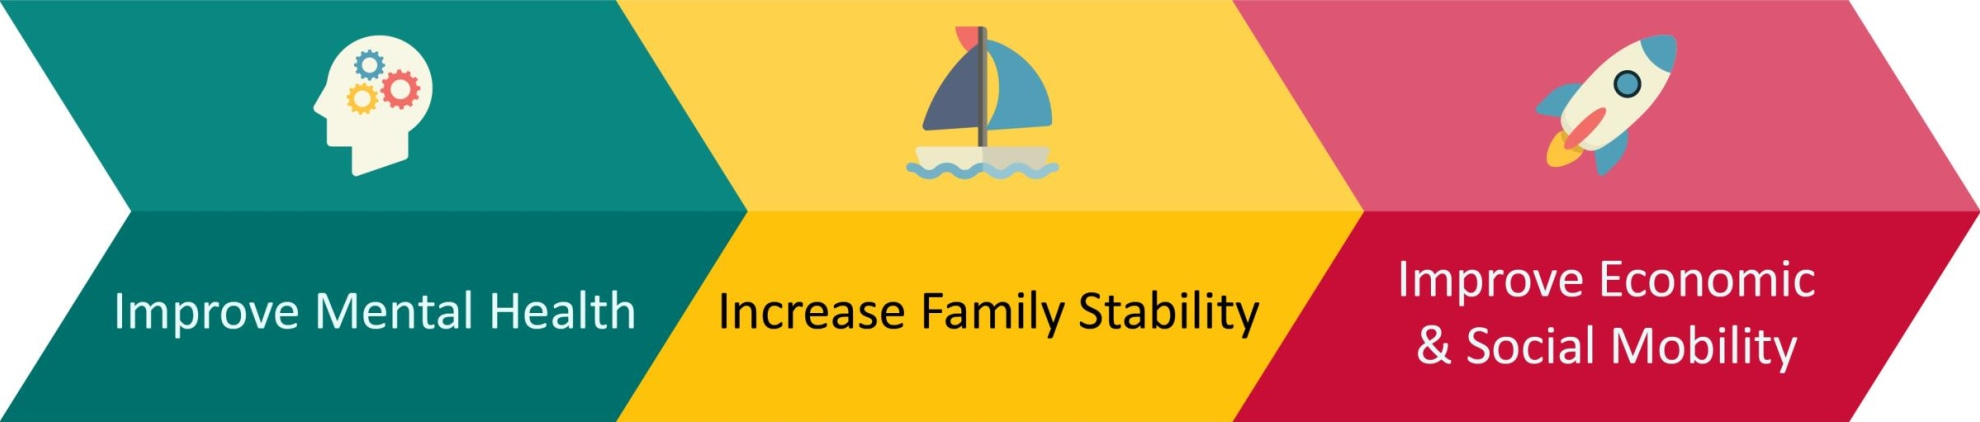 """An arrow contains a silhouette of a head with gears inside and the label """"Improve Mental Health."""" It points to a second arrow with an icon of sailboat and the words """"Increase Family Stability."""" This points to a third arrow with an icon of a rocket ship and the words """"Improve Economic and Social Mobility."""""""